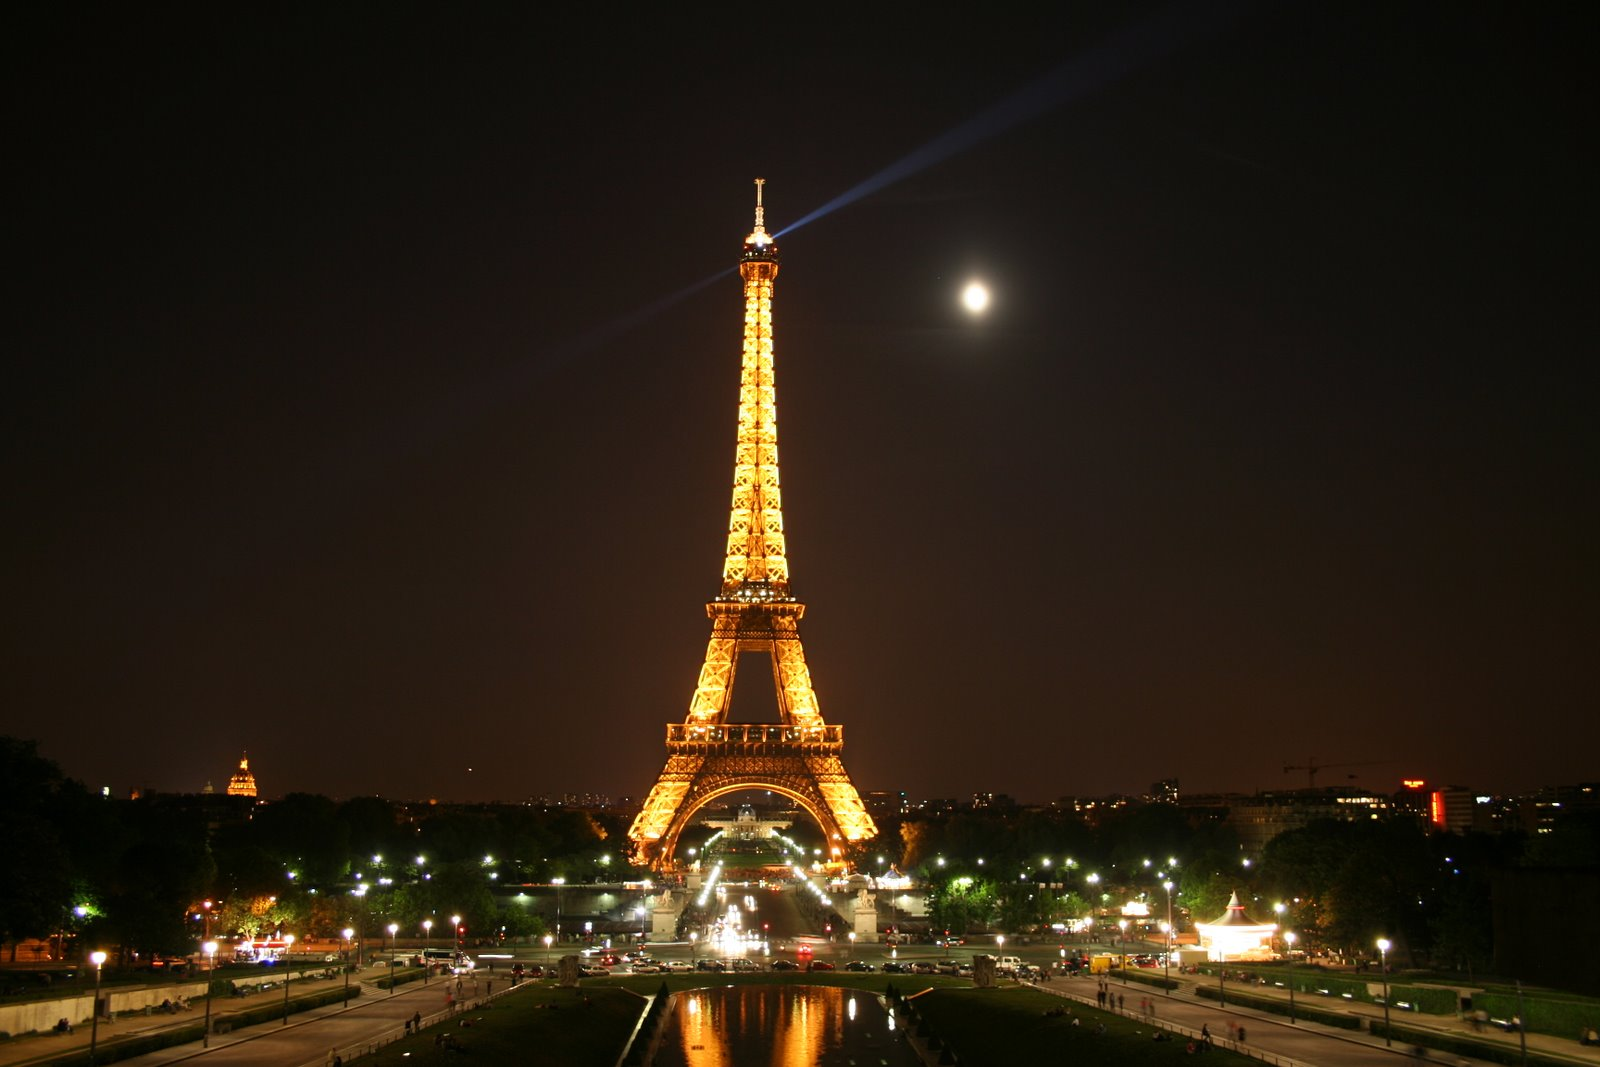 eiffel tower - photo #4